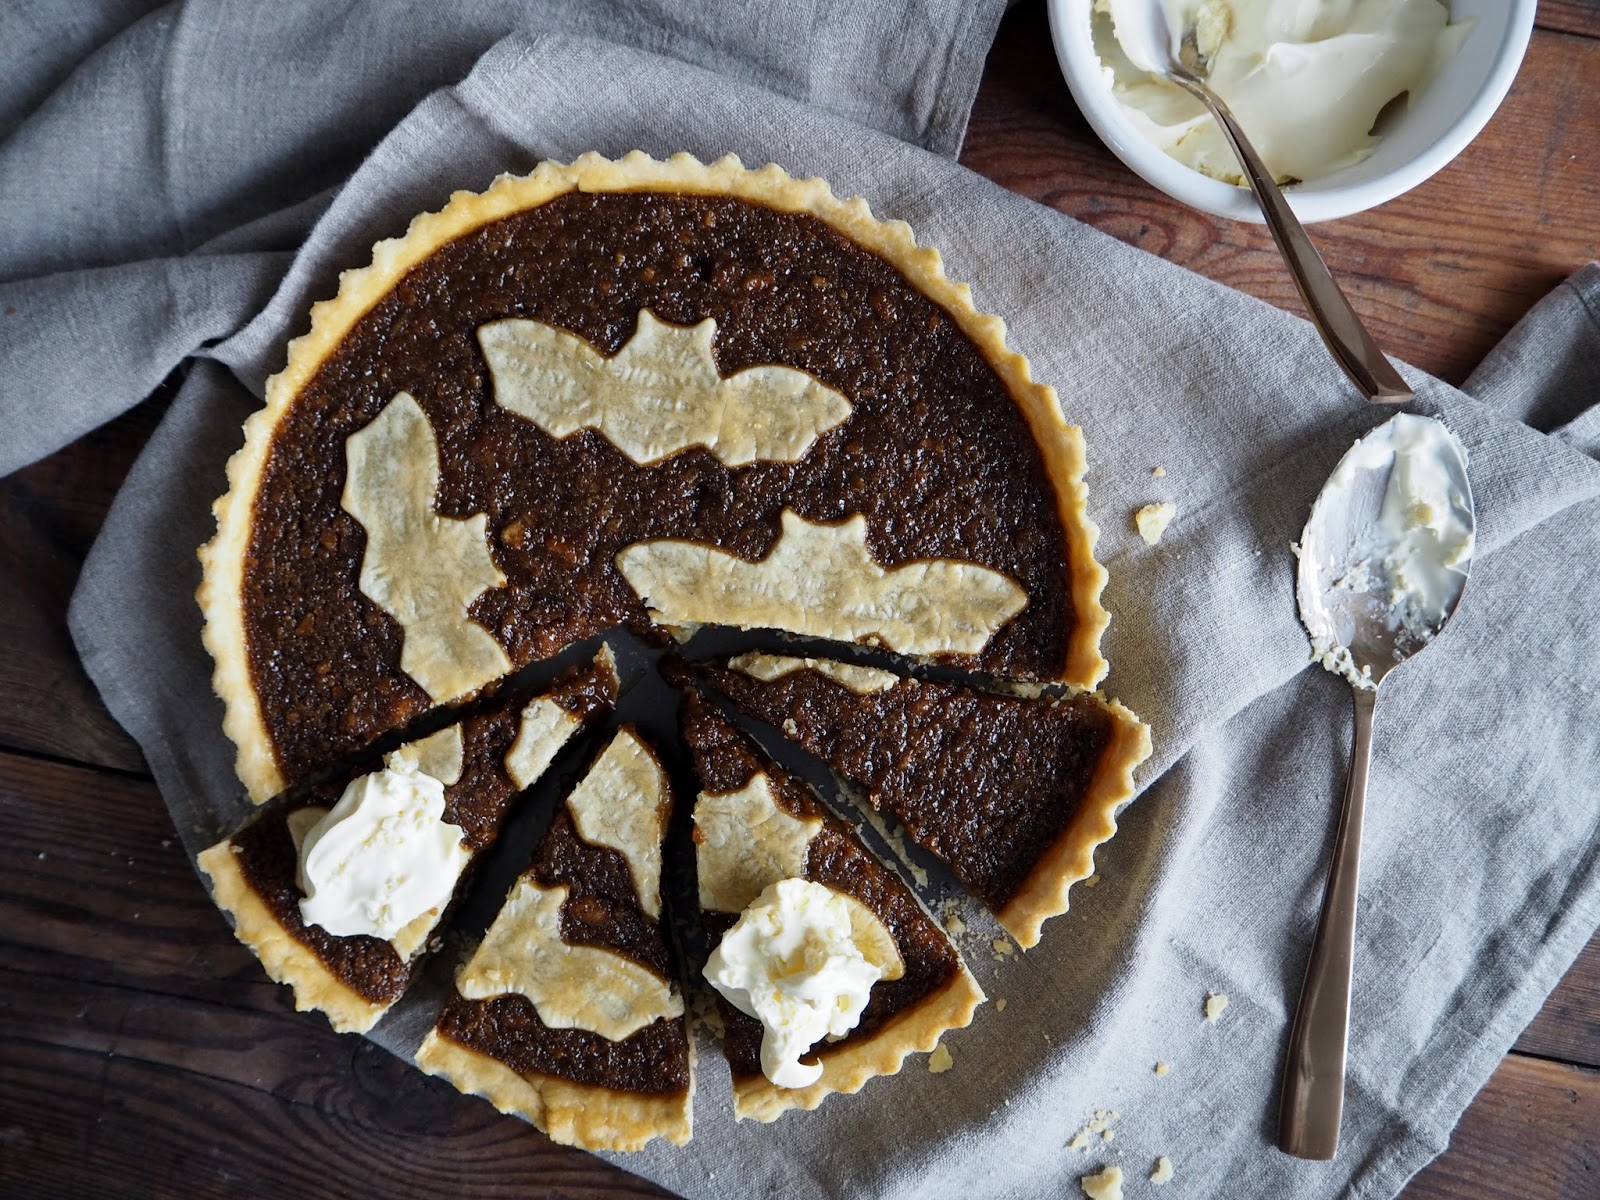 The Butter Treacle Tart recipe